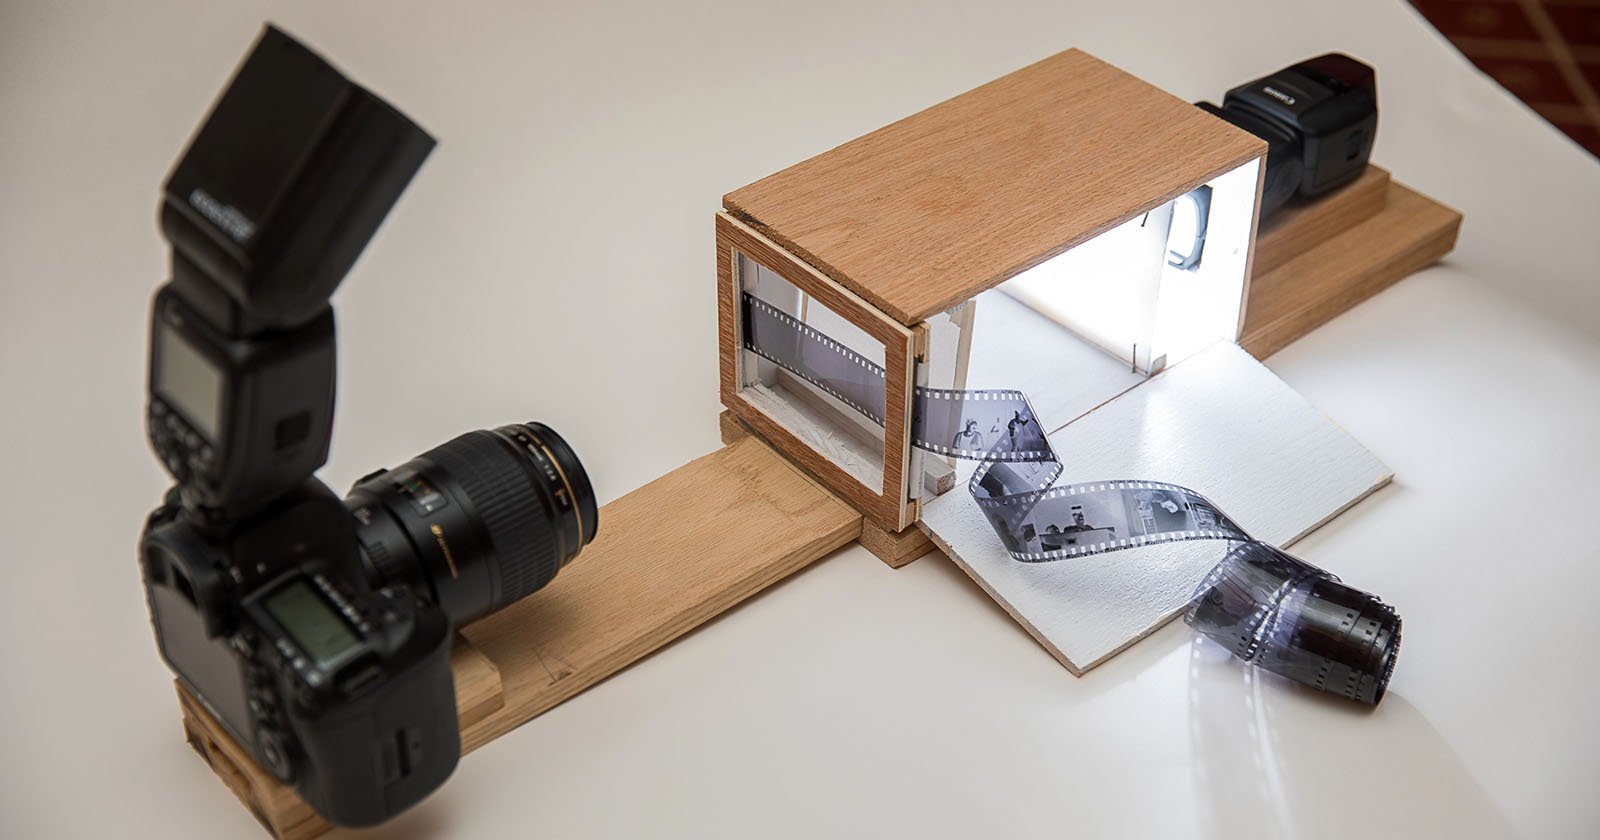 How I Built A Film Digitizing Lightbox